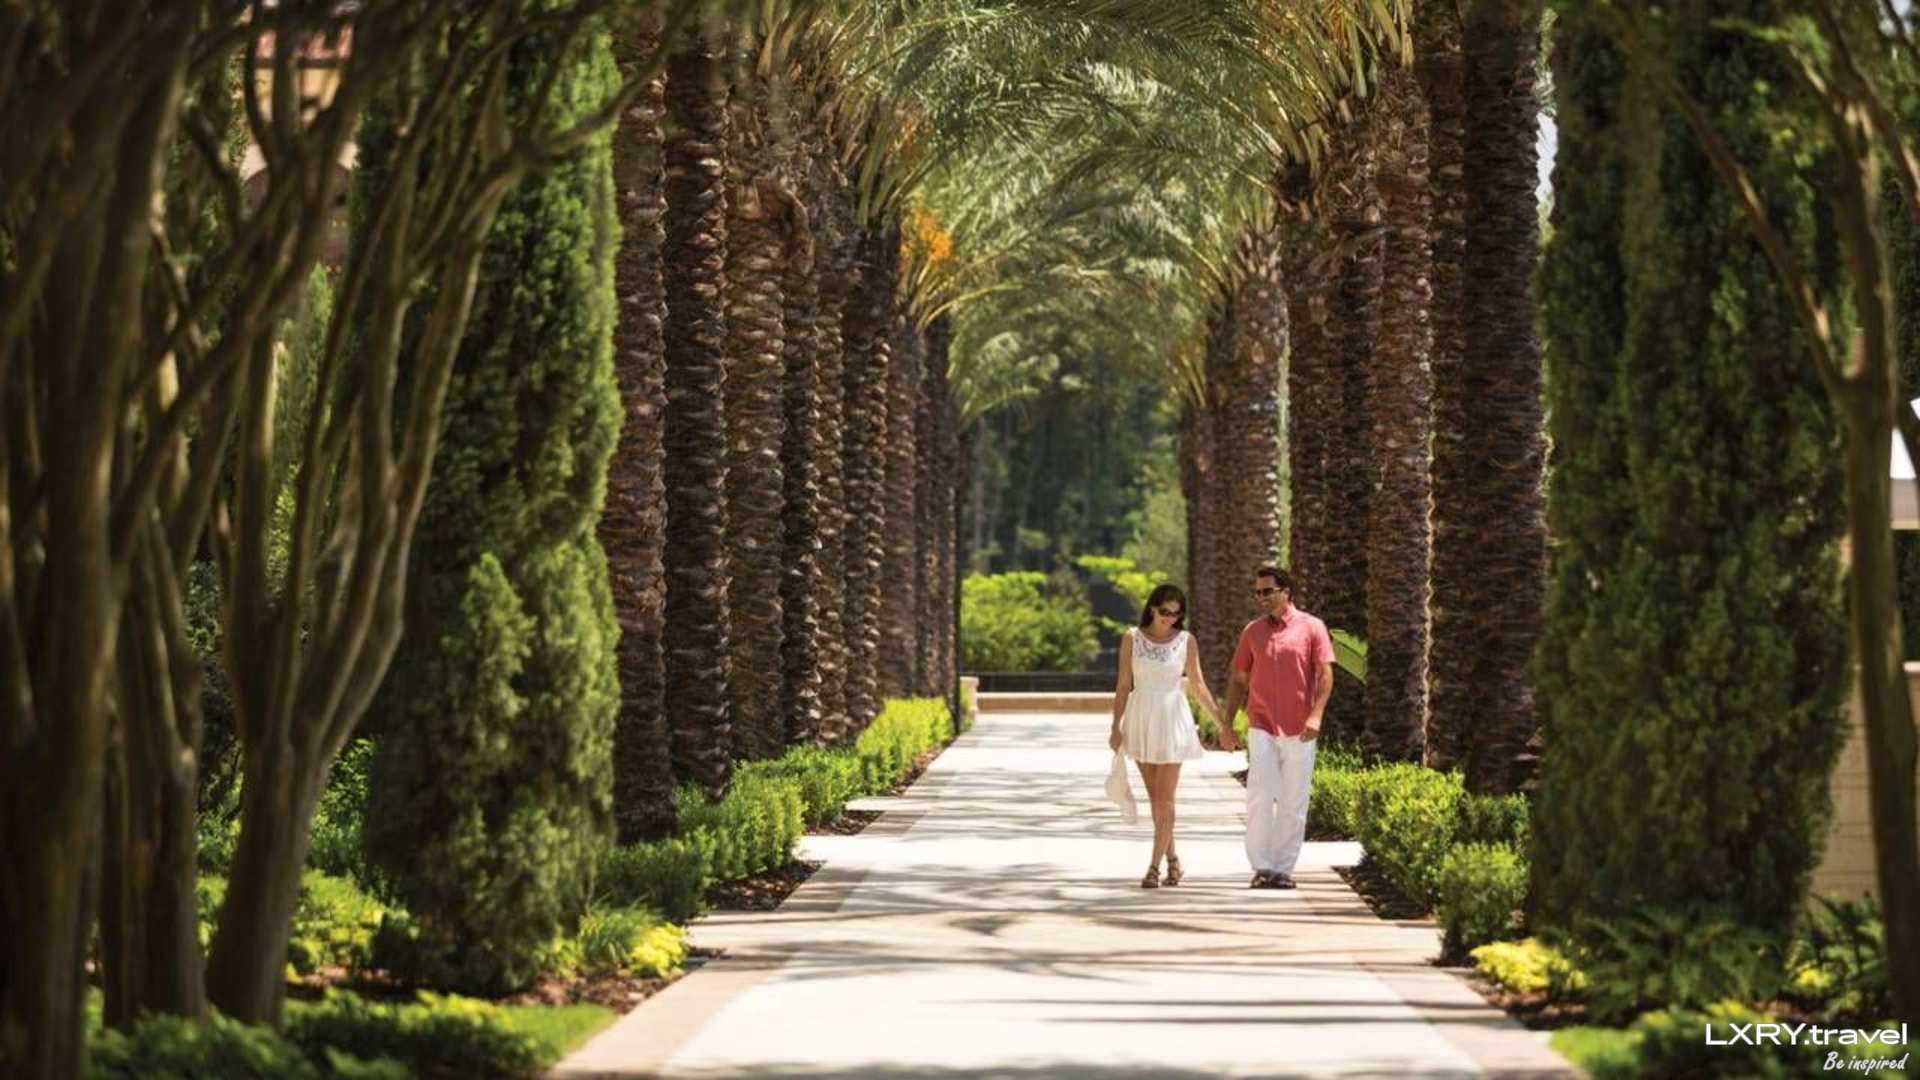 Four Seasons Resort Orlando at Walt Disney World Resort 9/33